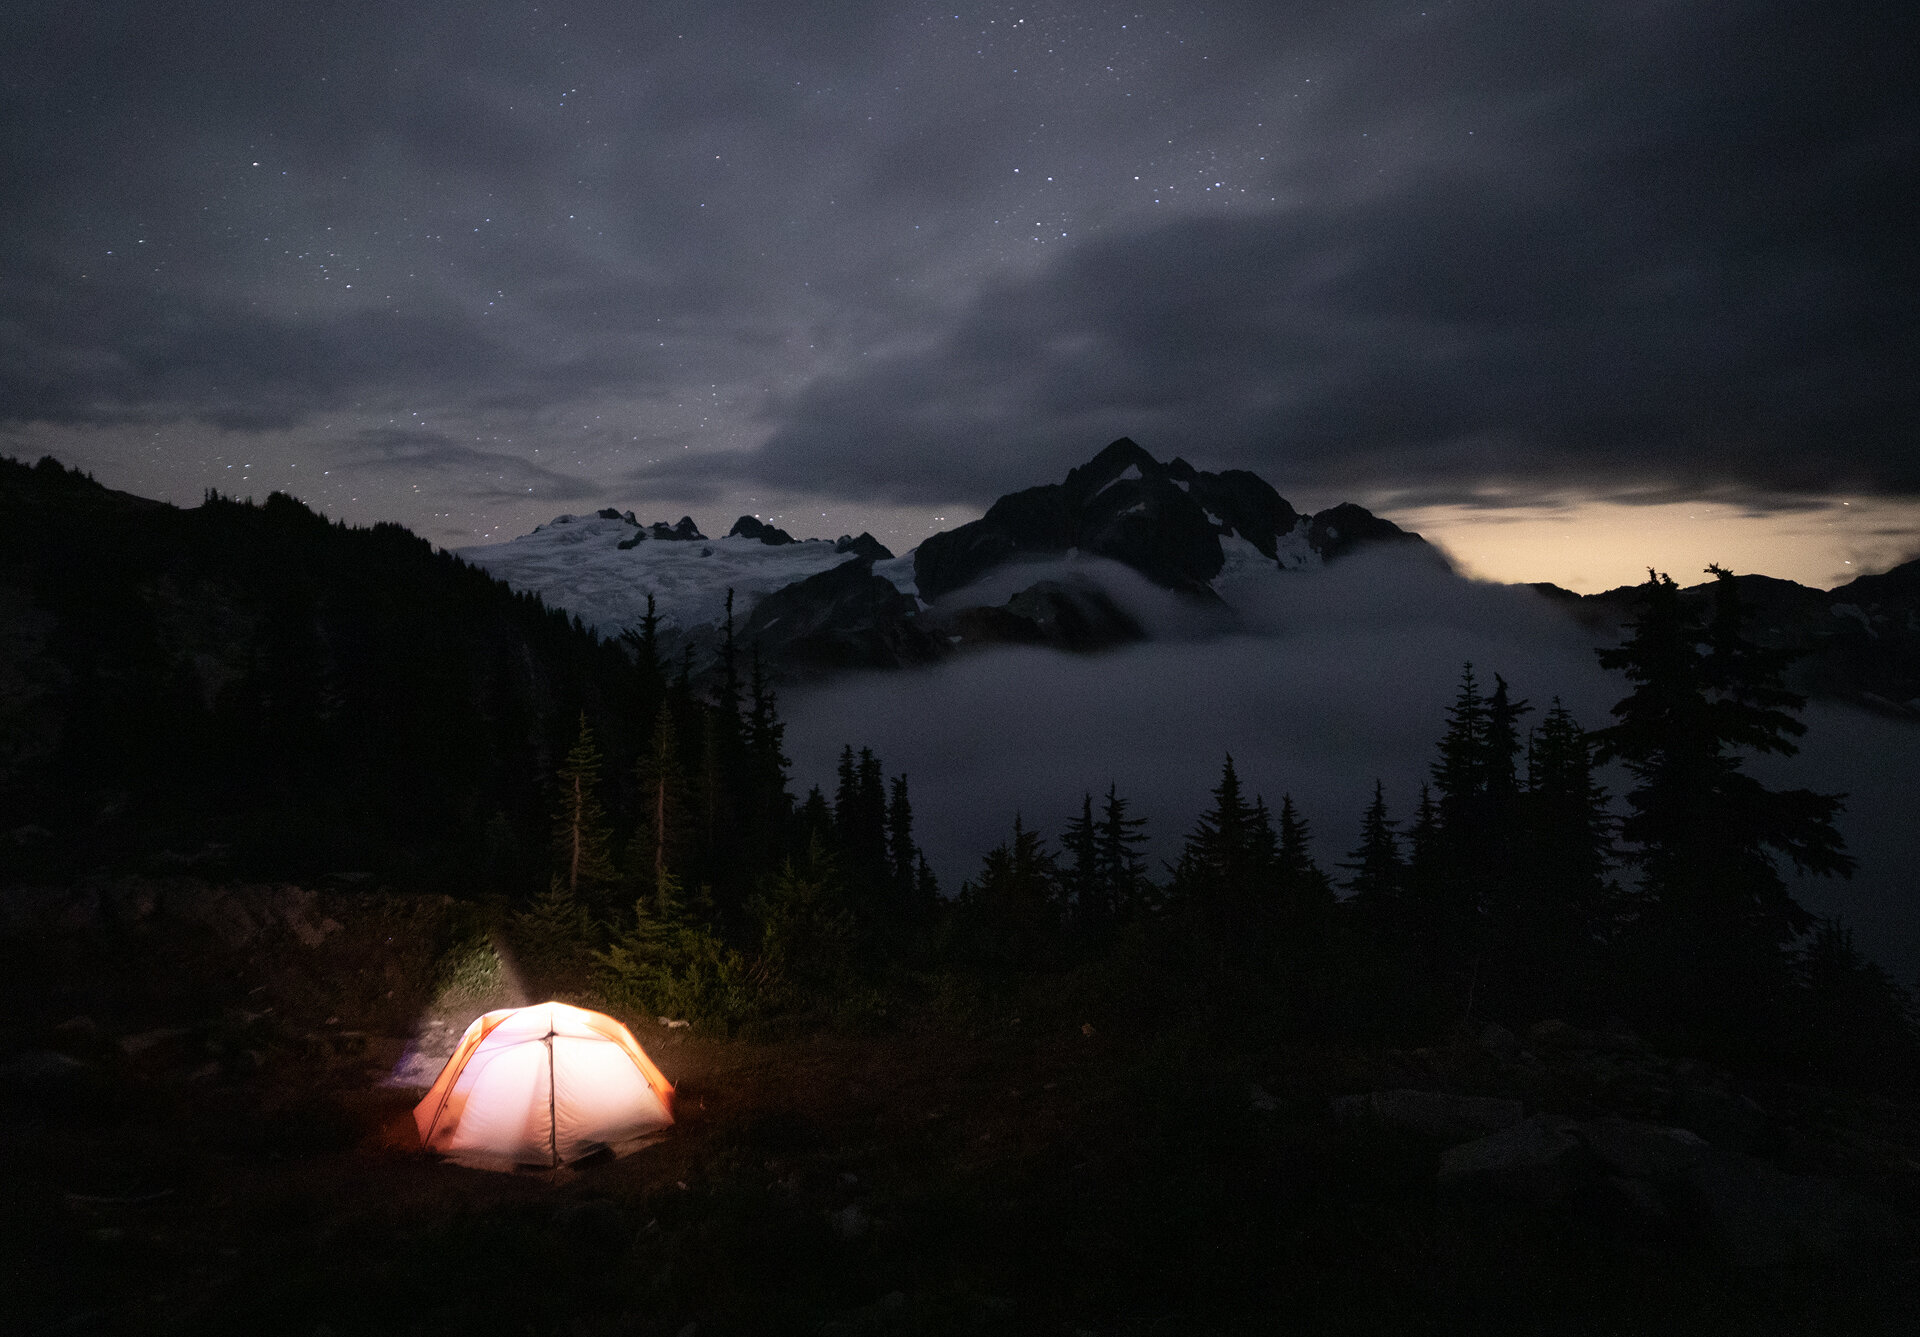 Our camp at night, with Mount Challenger and Whatcom Peak in the background